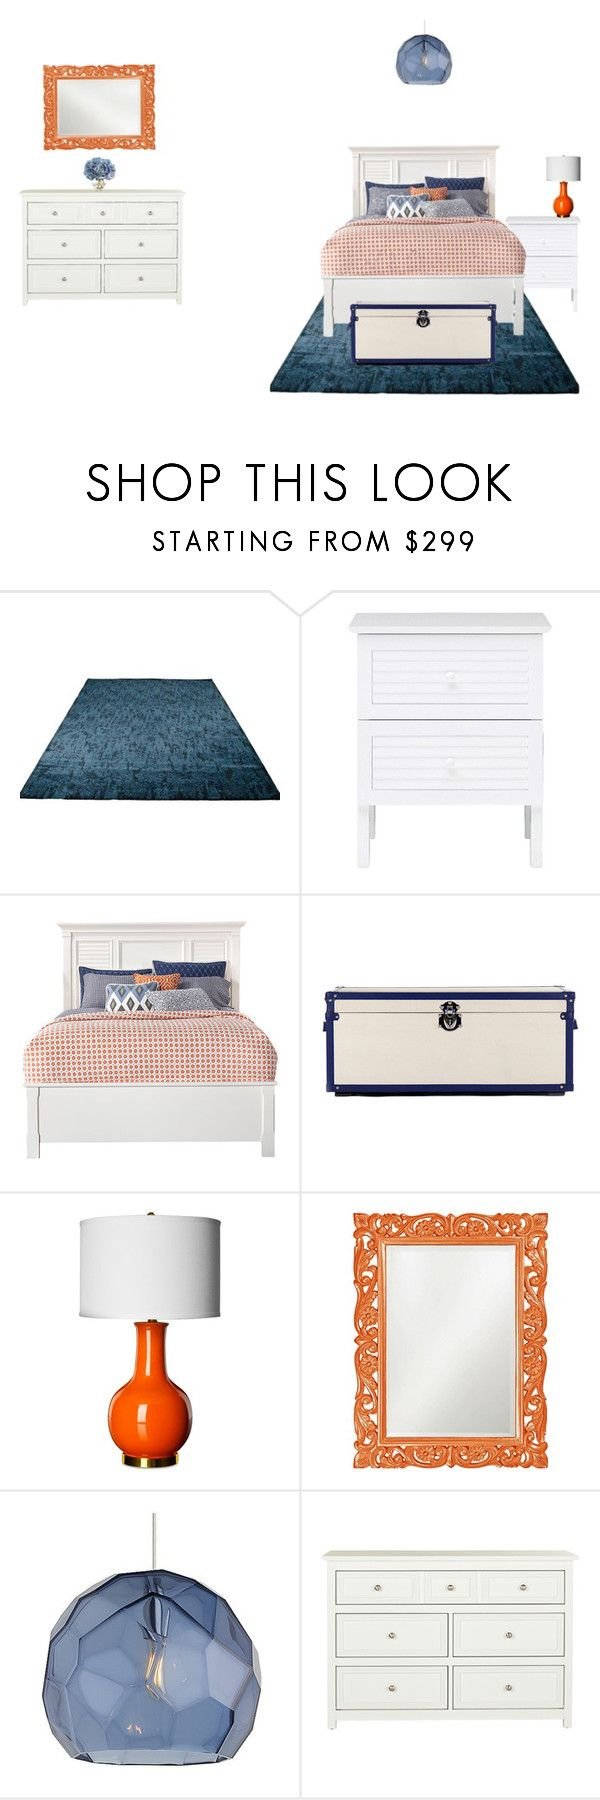 """""""Blue & Orange Bedroom"""" by bri-grim ❤ liked on Polyvore featuring interior, interiors, interior design, home, home decor, interior decorating, Safavieh, Howard Elliott, Tech Lighting and The French Bee"""